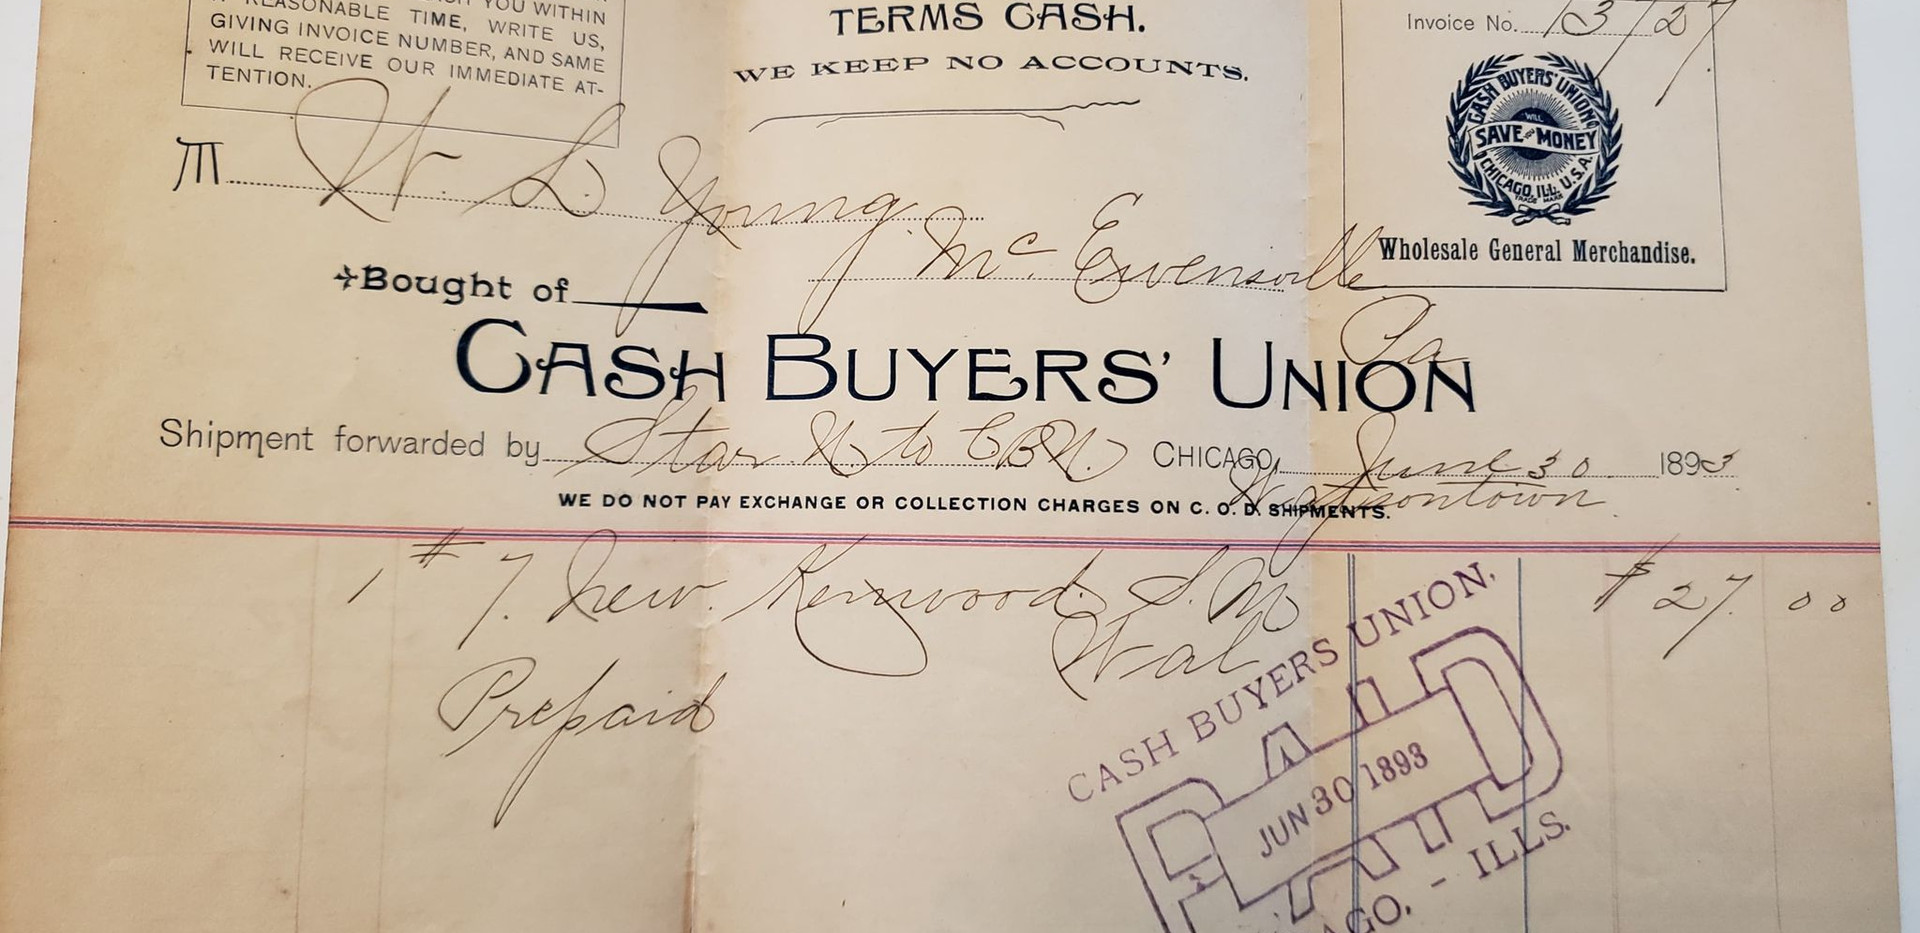 Receipt for antique sewing machine